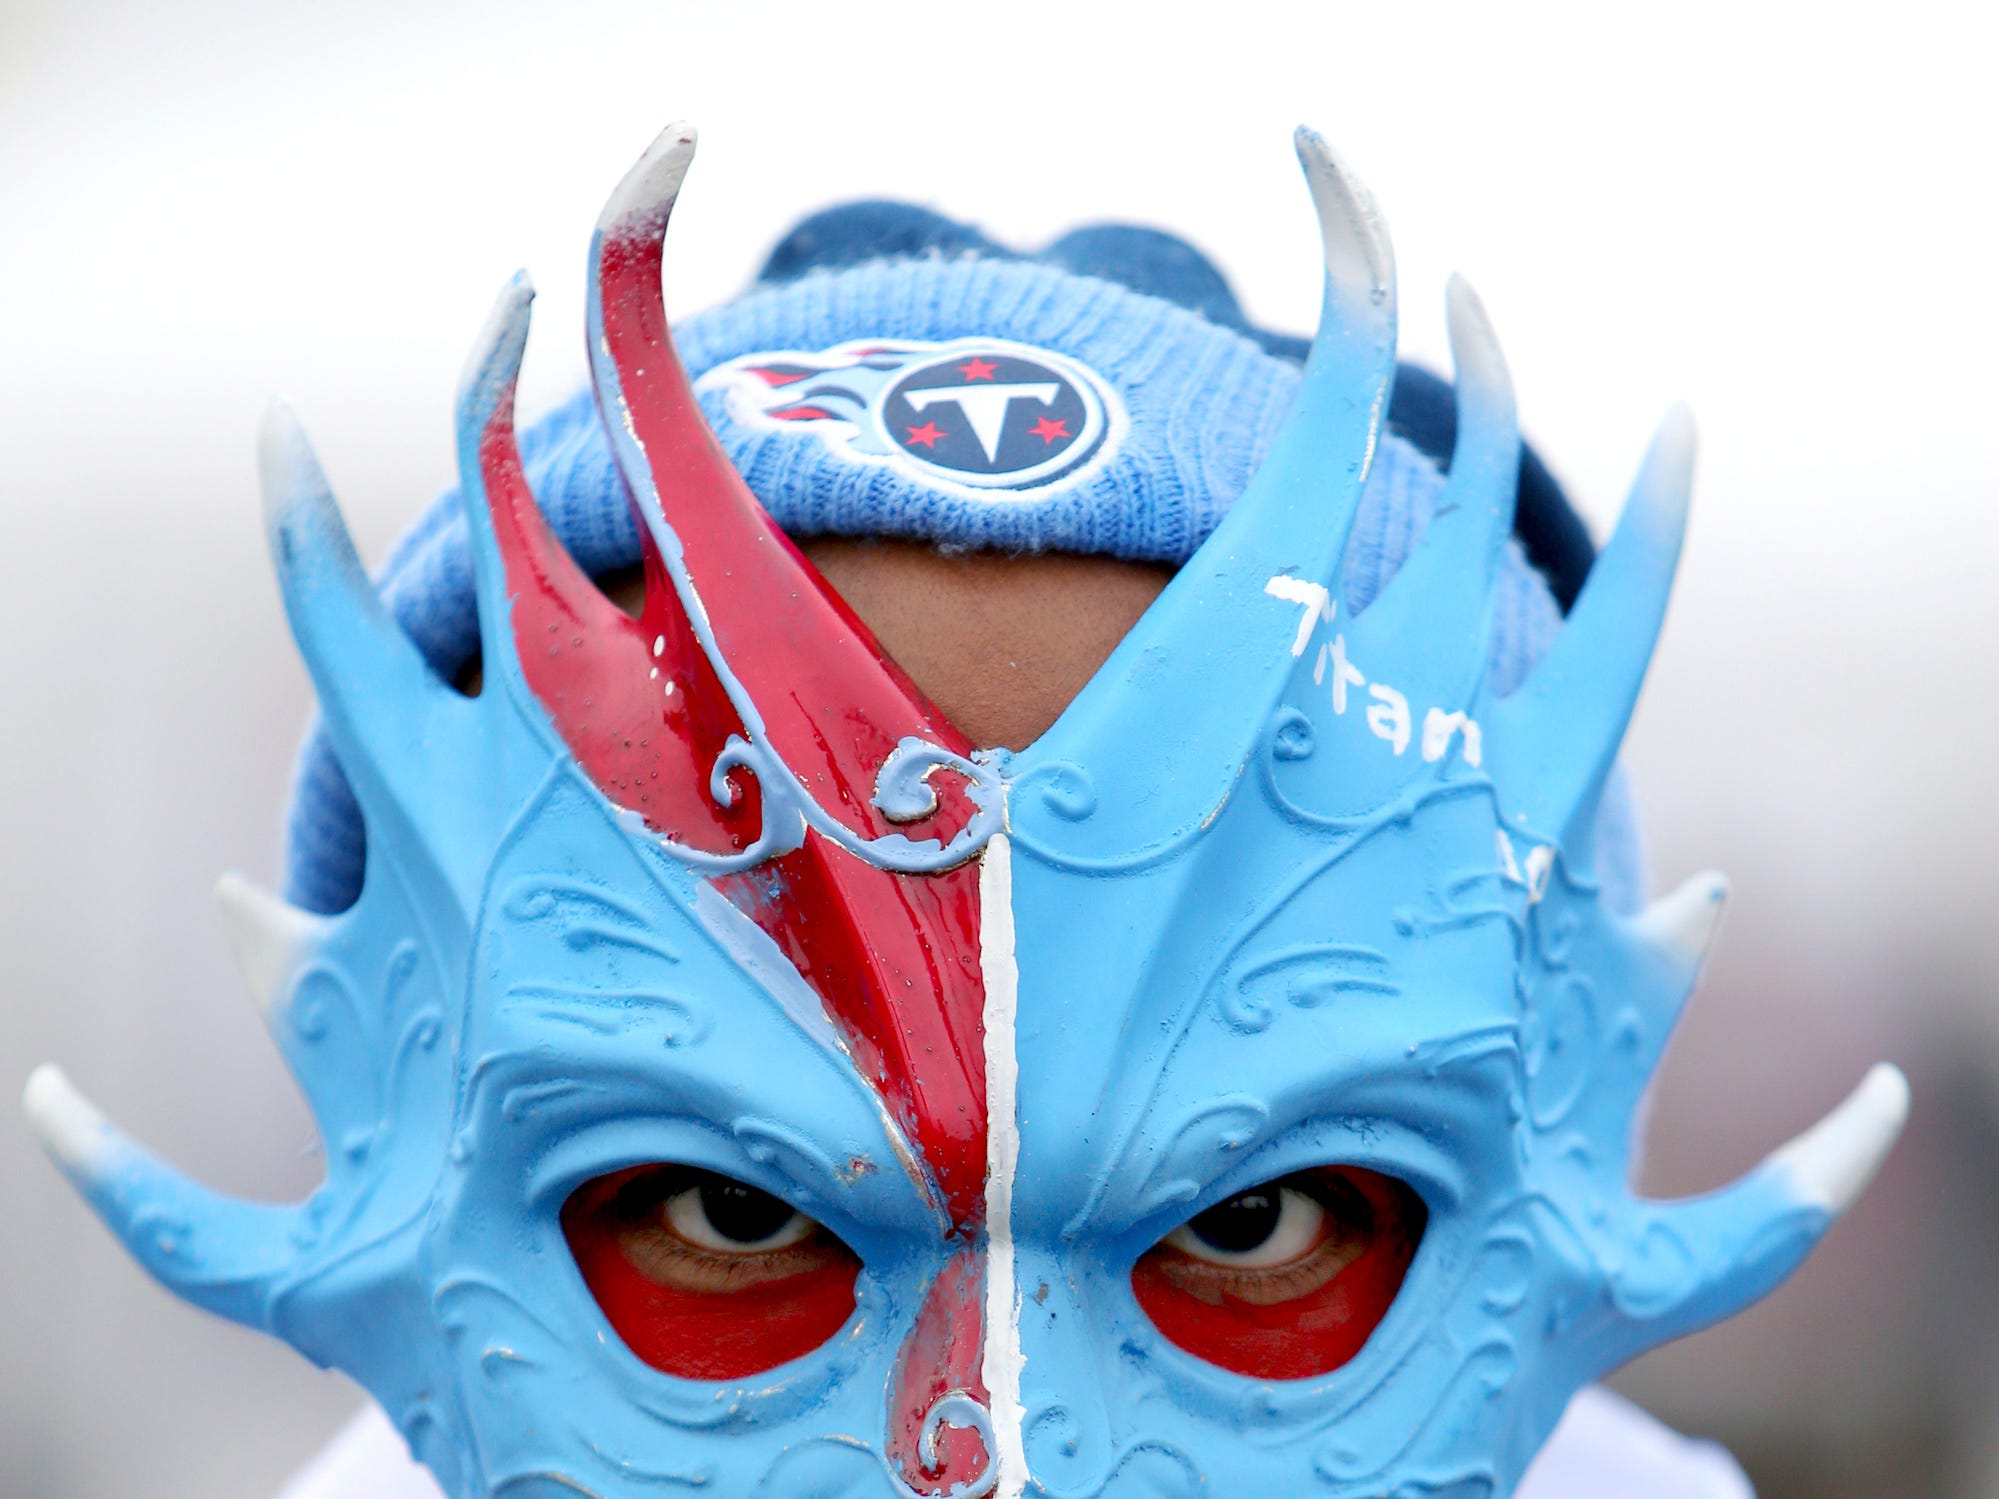 Jarremy Gooden of Nashville, Tenn., poses for a photograph prior to an NFL football game between the Buffalo Bills and the Tennessee Titans, Sunday, Oct. 7, 2018, in Orchard Park, N.Y. (AP Photo/Jeffrey T. Barnes)